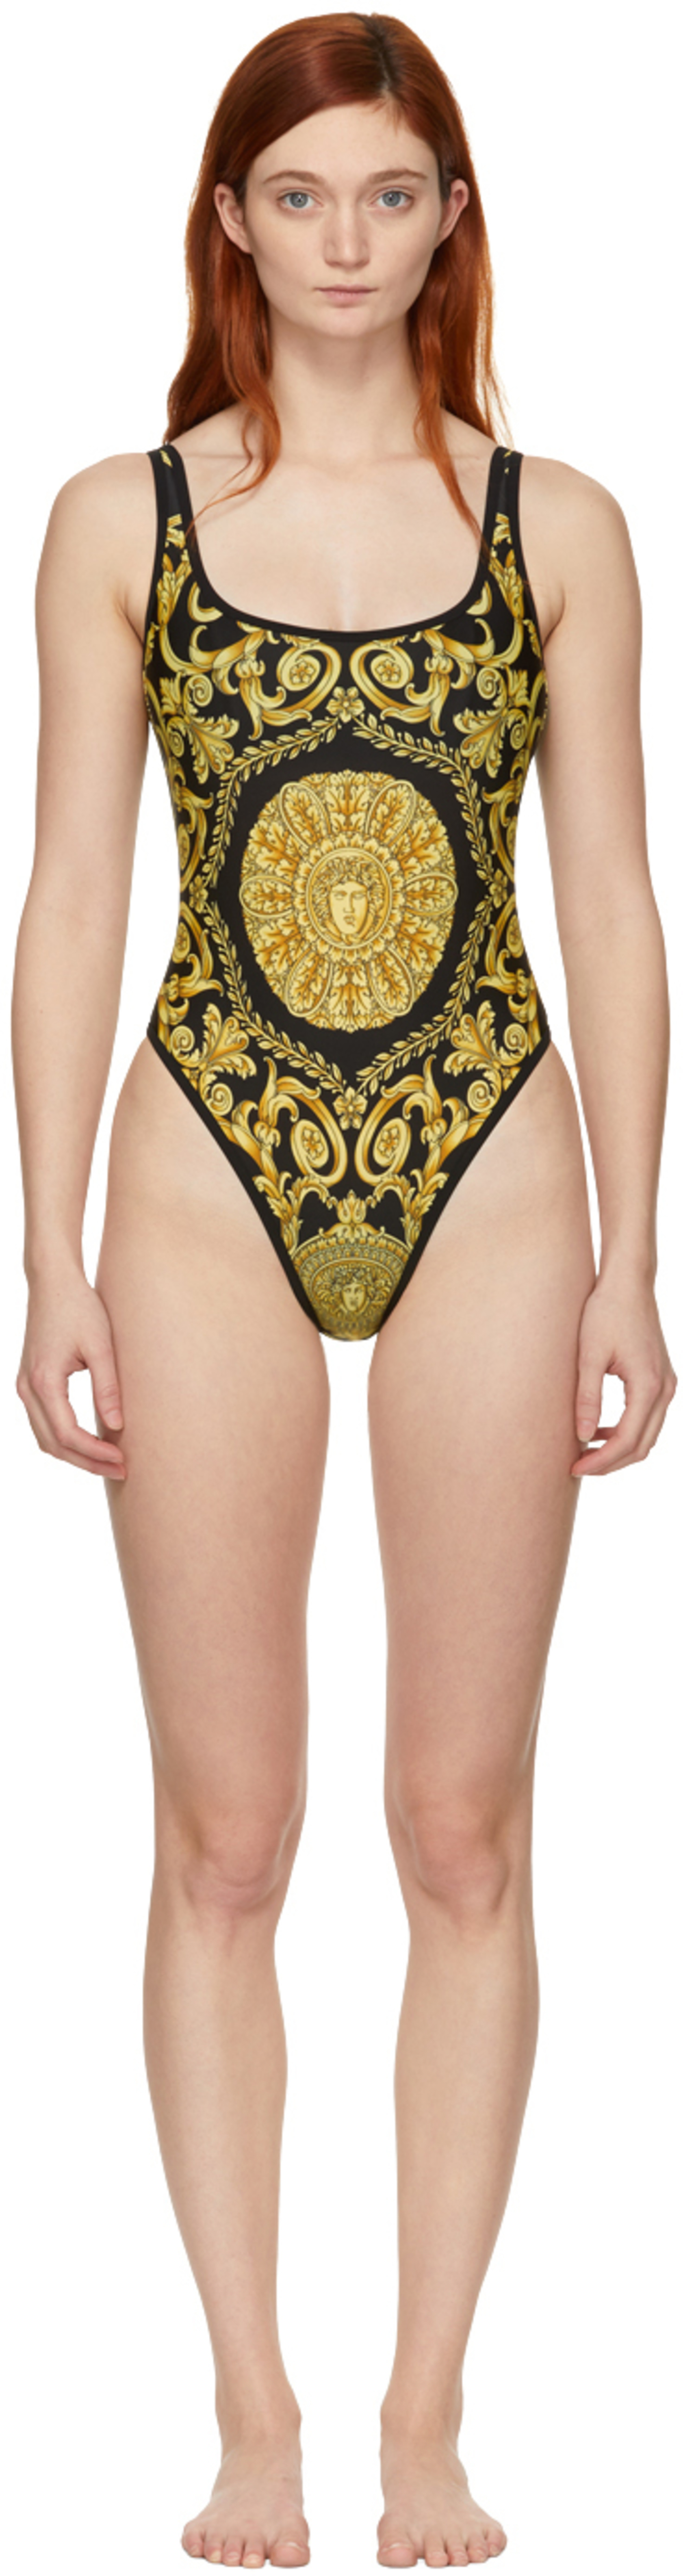 e7cea1f6c3 Versace Underwear for Women SS19 Collection